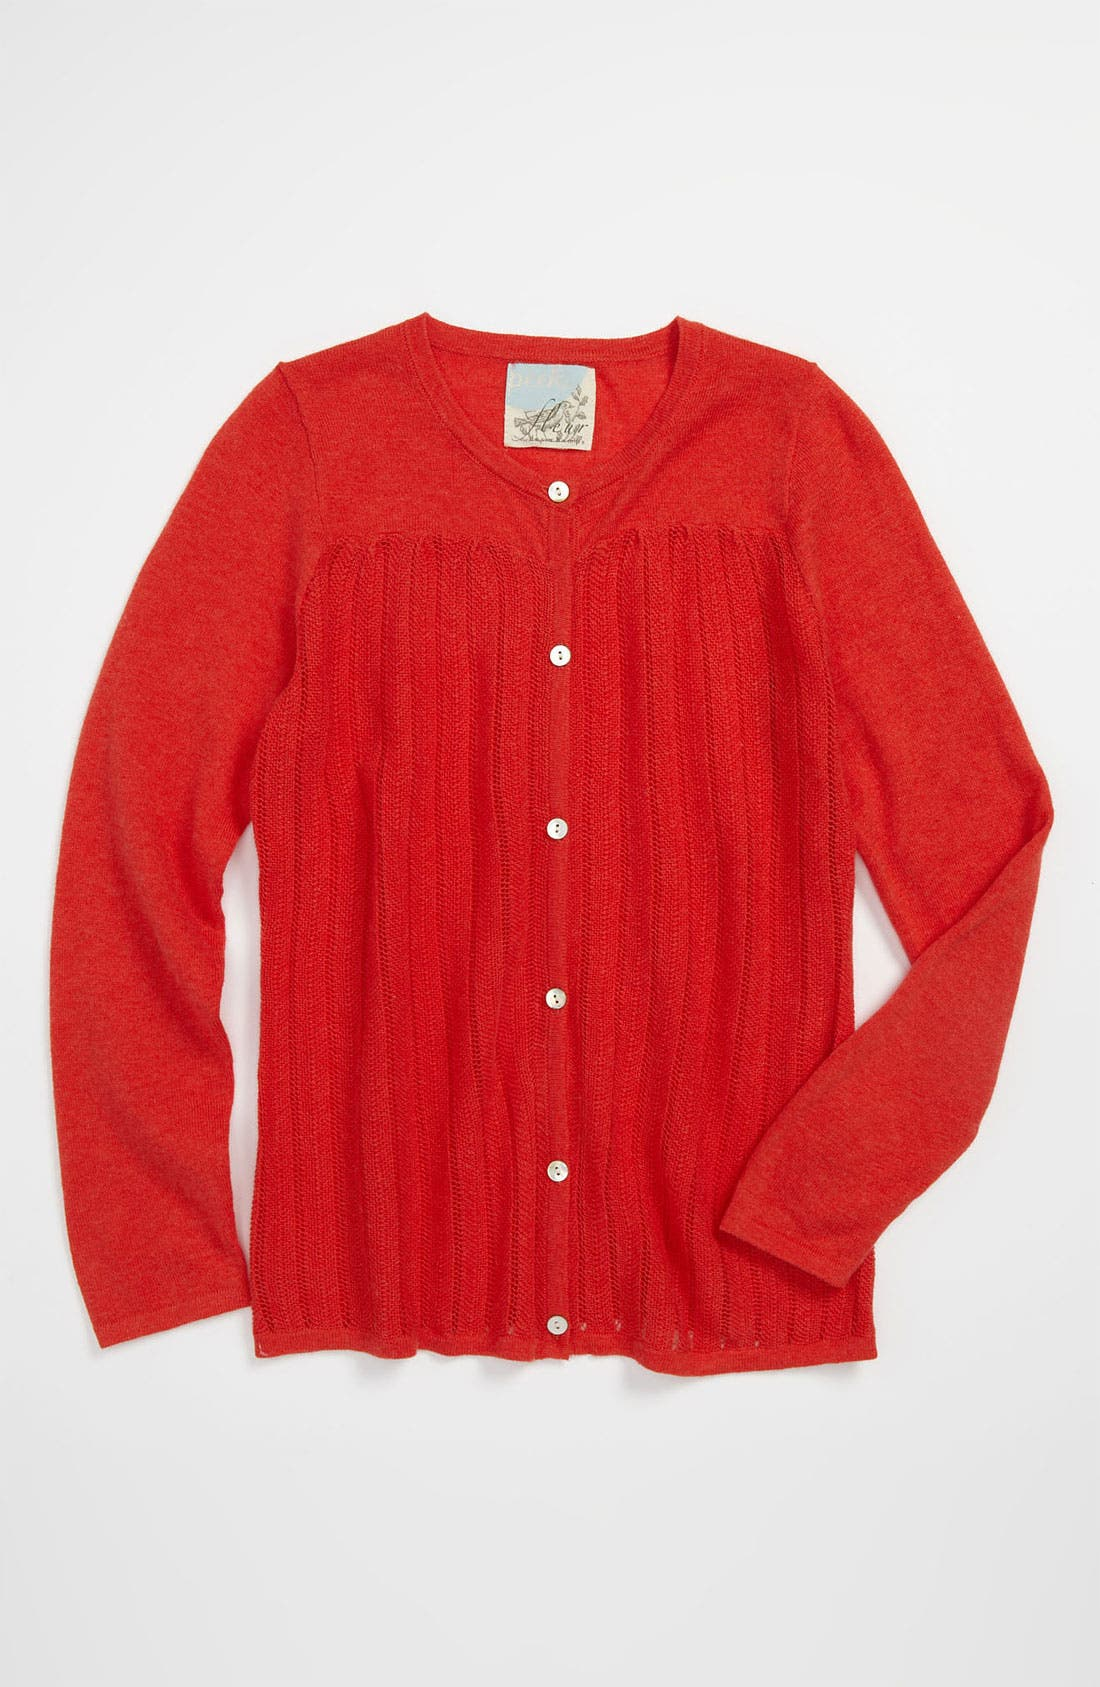 Alternate Image 1 Selected - Peek 'Lillian' Cardigan (Toddler, Little Girls & Big Girls)